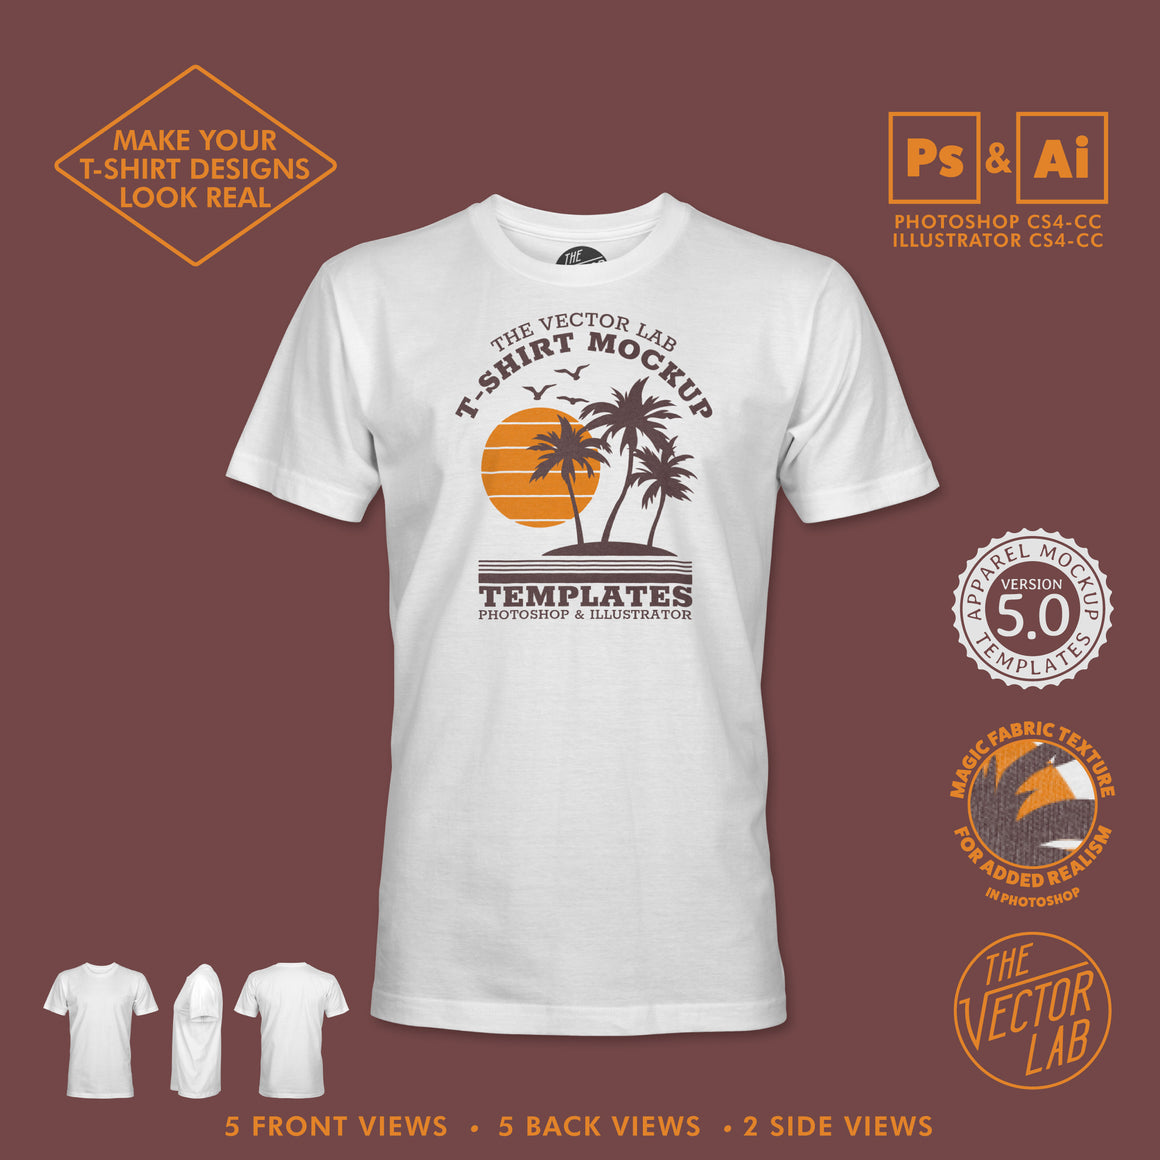 T Shirt Design Maker App – EDGE Engineering and Consulting Limited